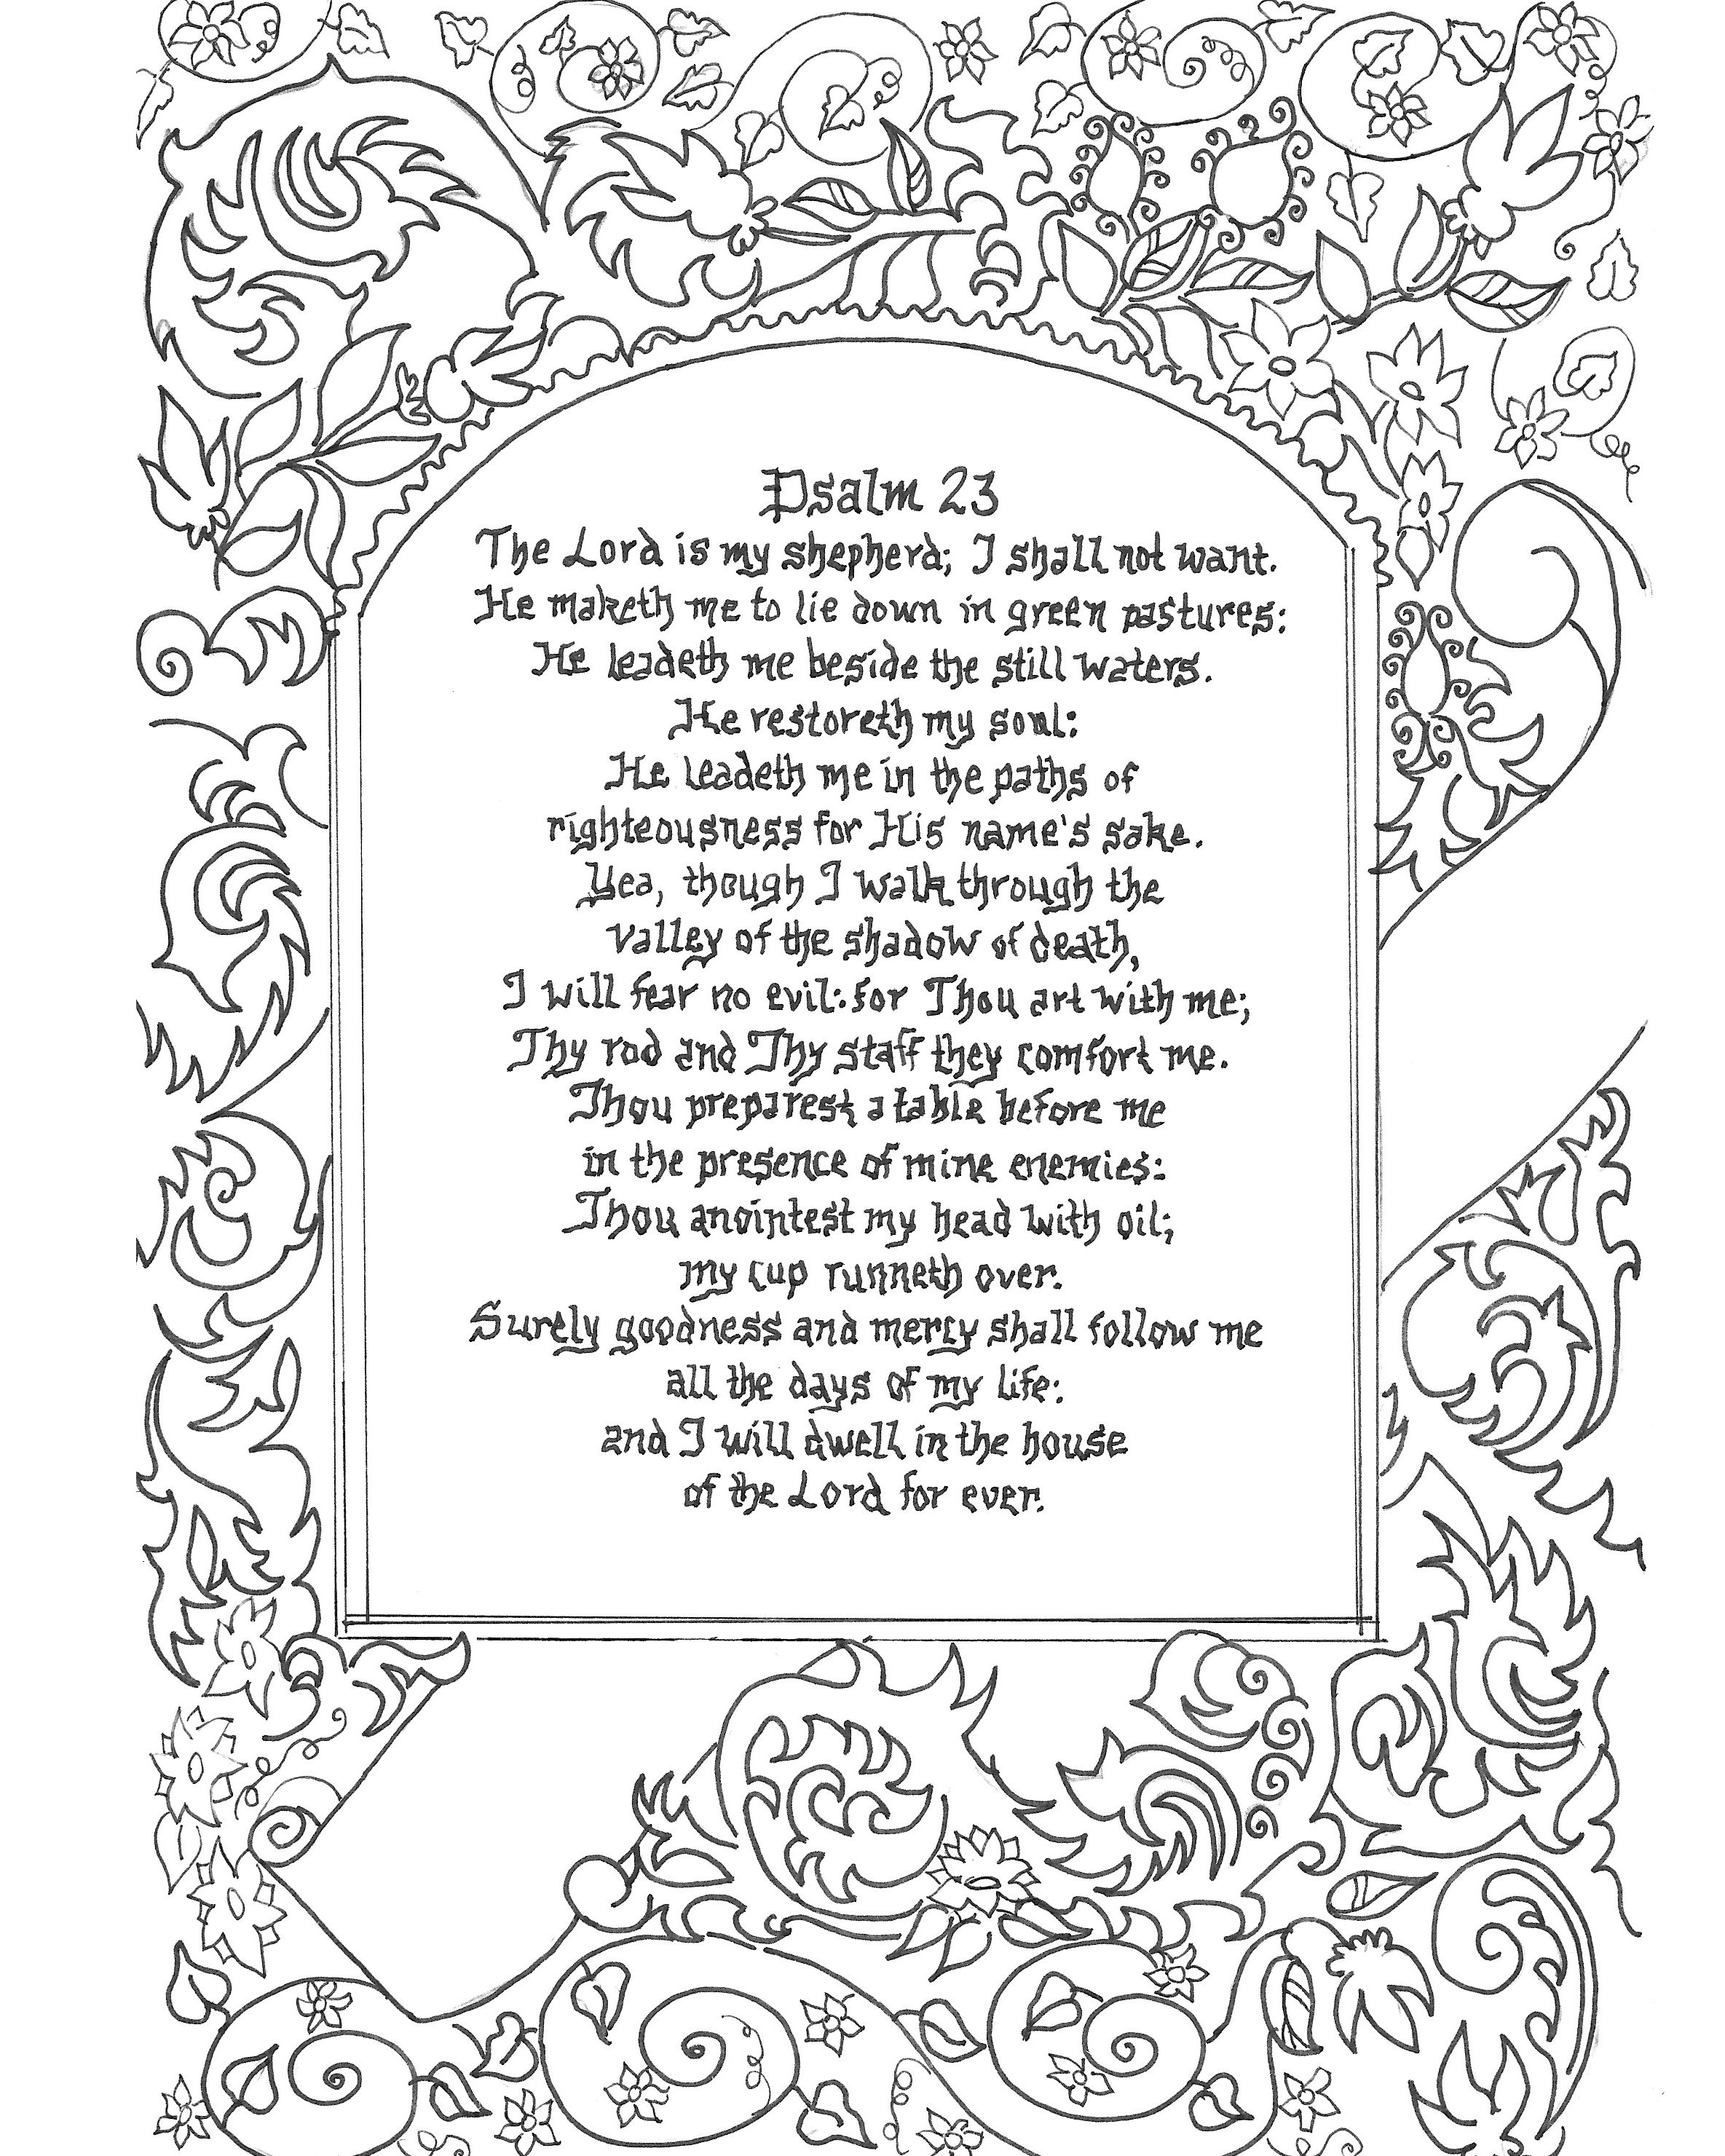 Free Coloring Printable Page 8x10 Download And Color As You Read And Reflect On Bible God S Word